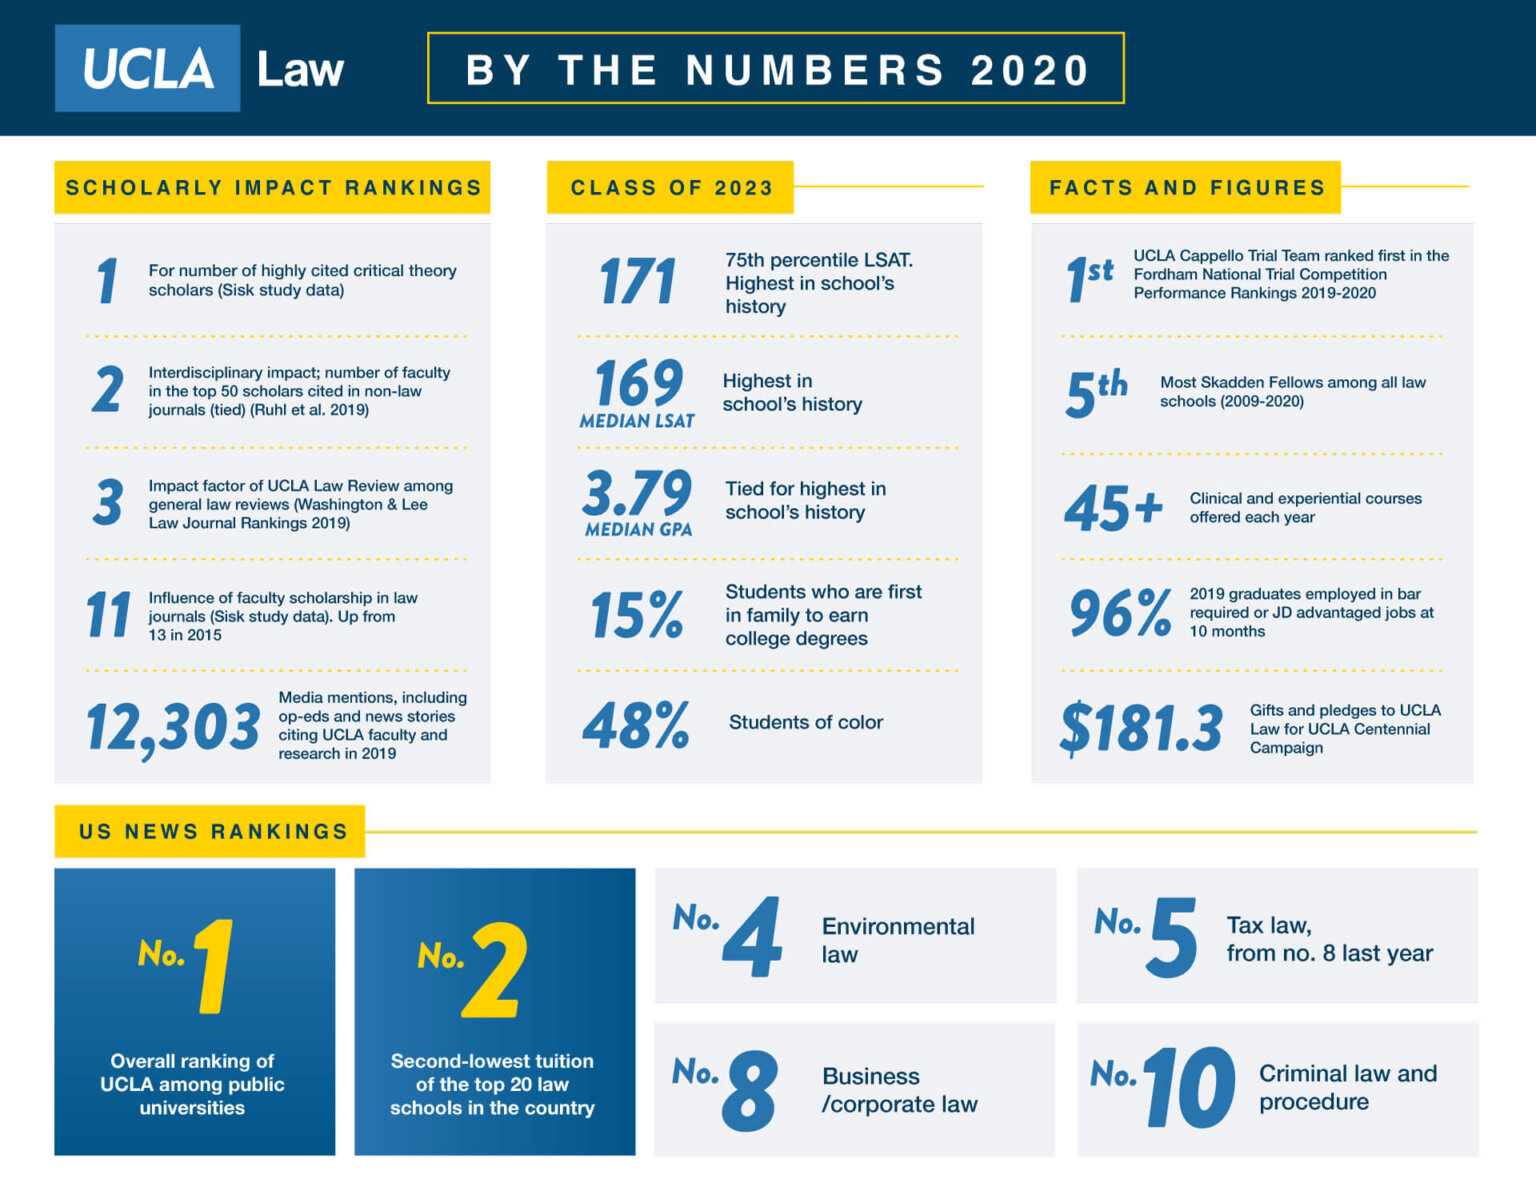 UCLA Law School 2020 Key Statistics